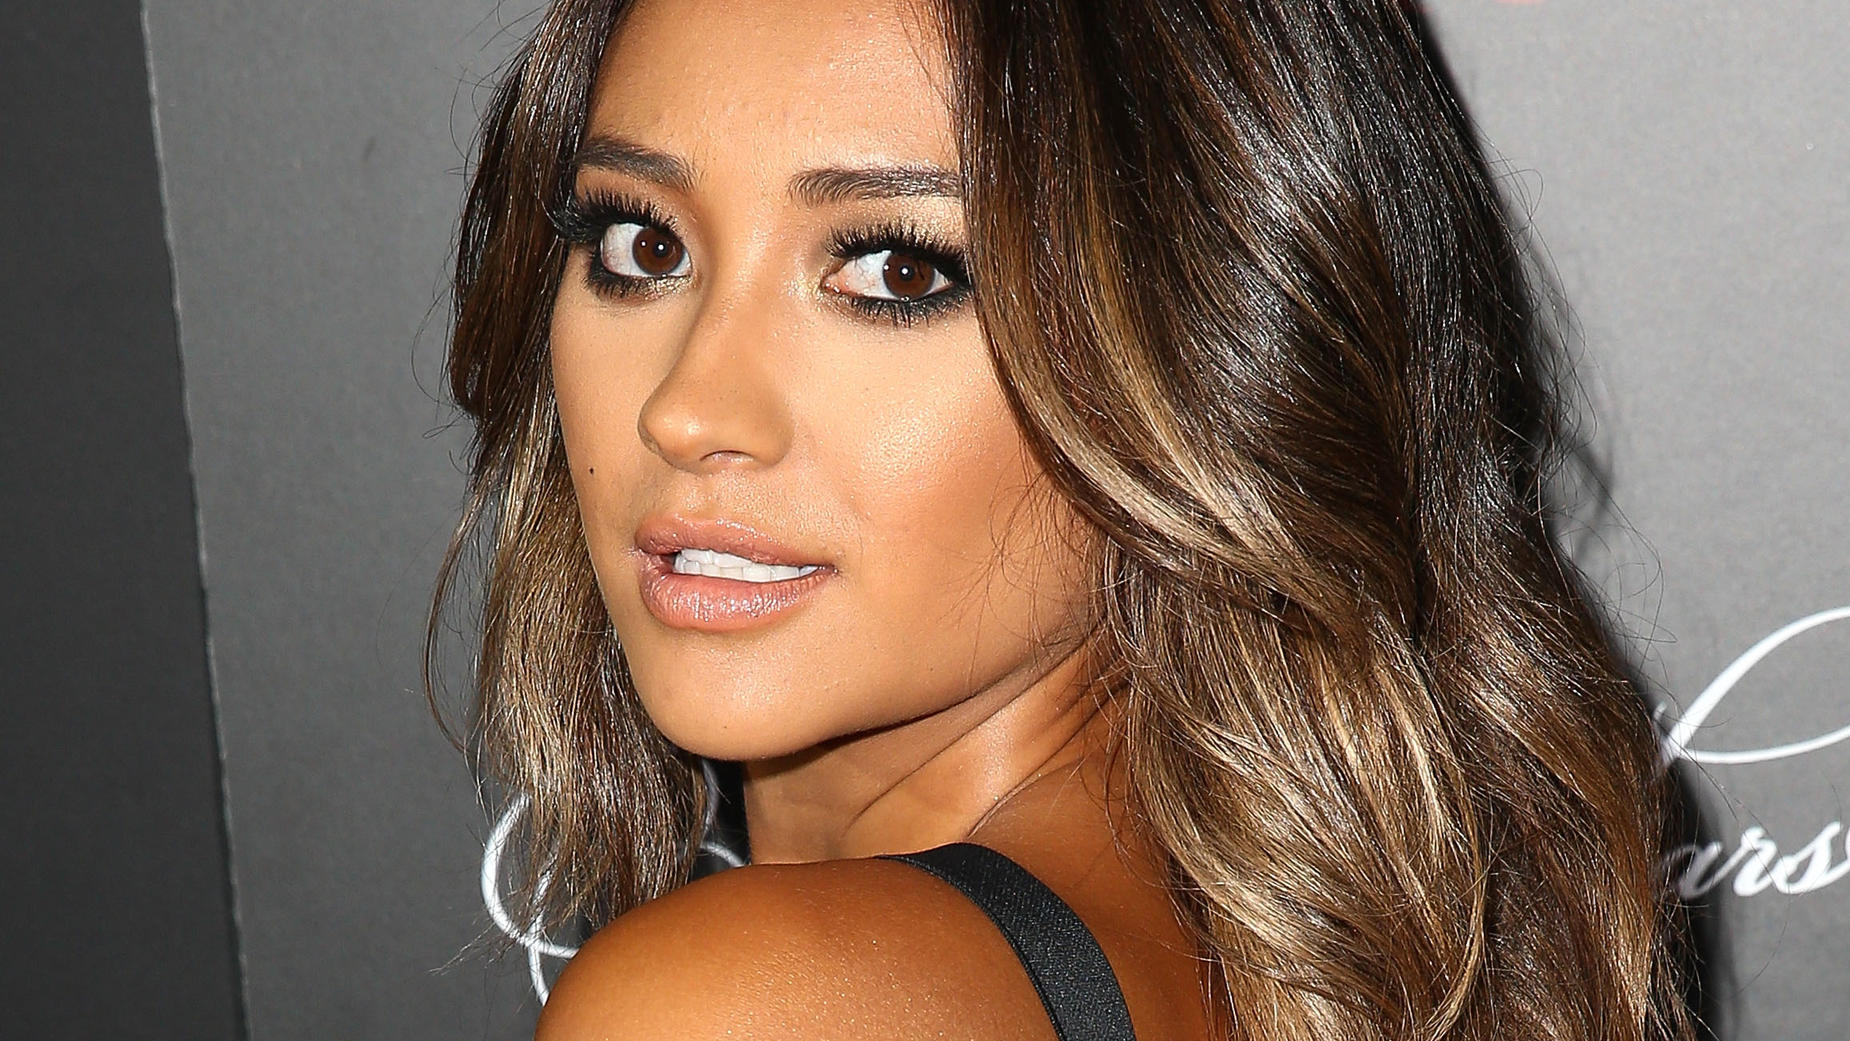 HOLLYWOOD, CA - MAY 31:  Actress Shay Mitchell attends the 'Pretty Little Liars' 100th episode celebration at W Hollywood on May 31, 2014 in Hollywood, California.  (Photo by Imeh Akpanudosen/Getty Images)